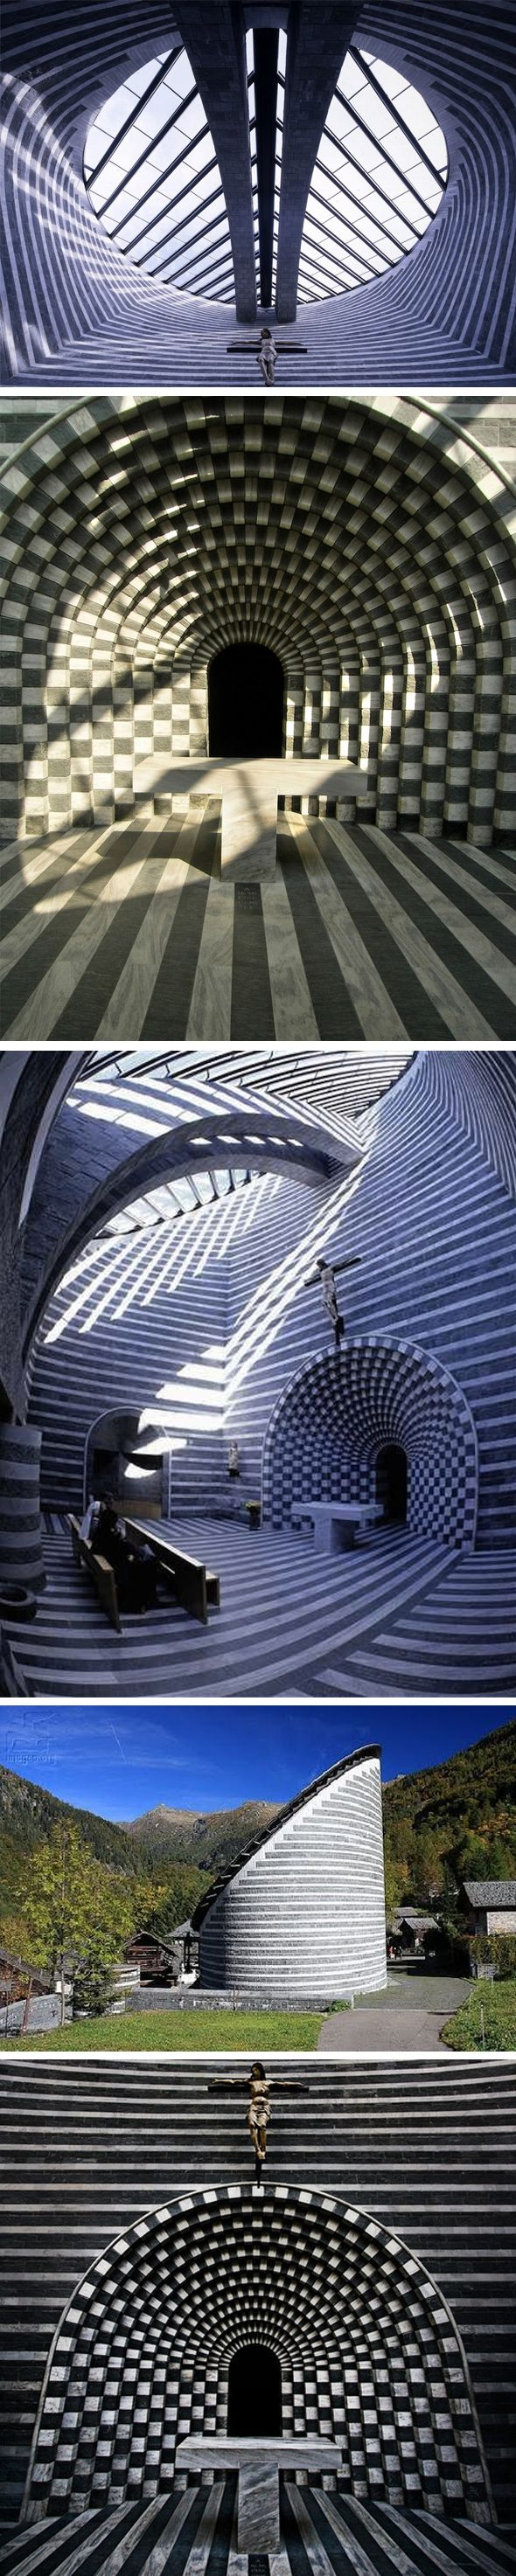 Église de San Giovanni Battista par Mario Botta